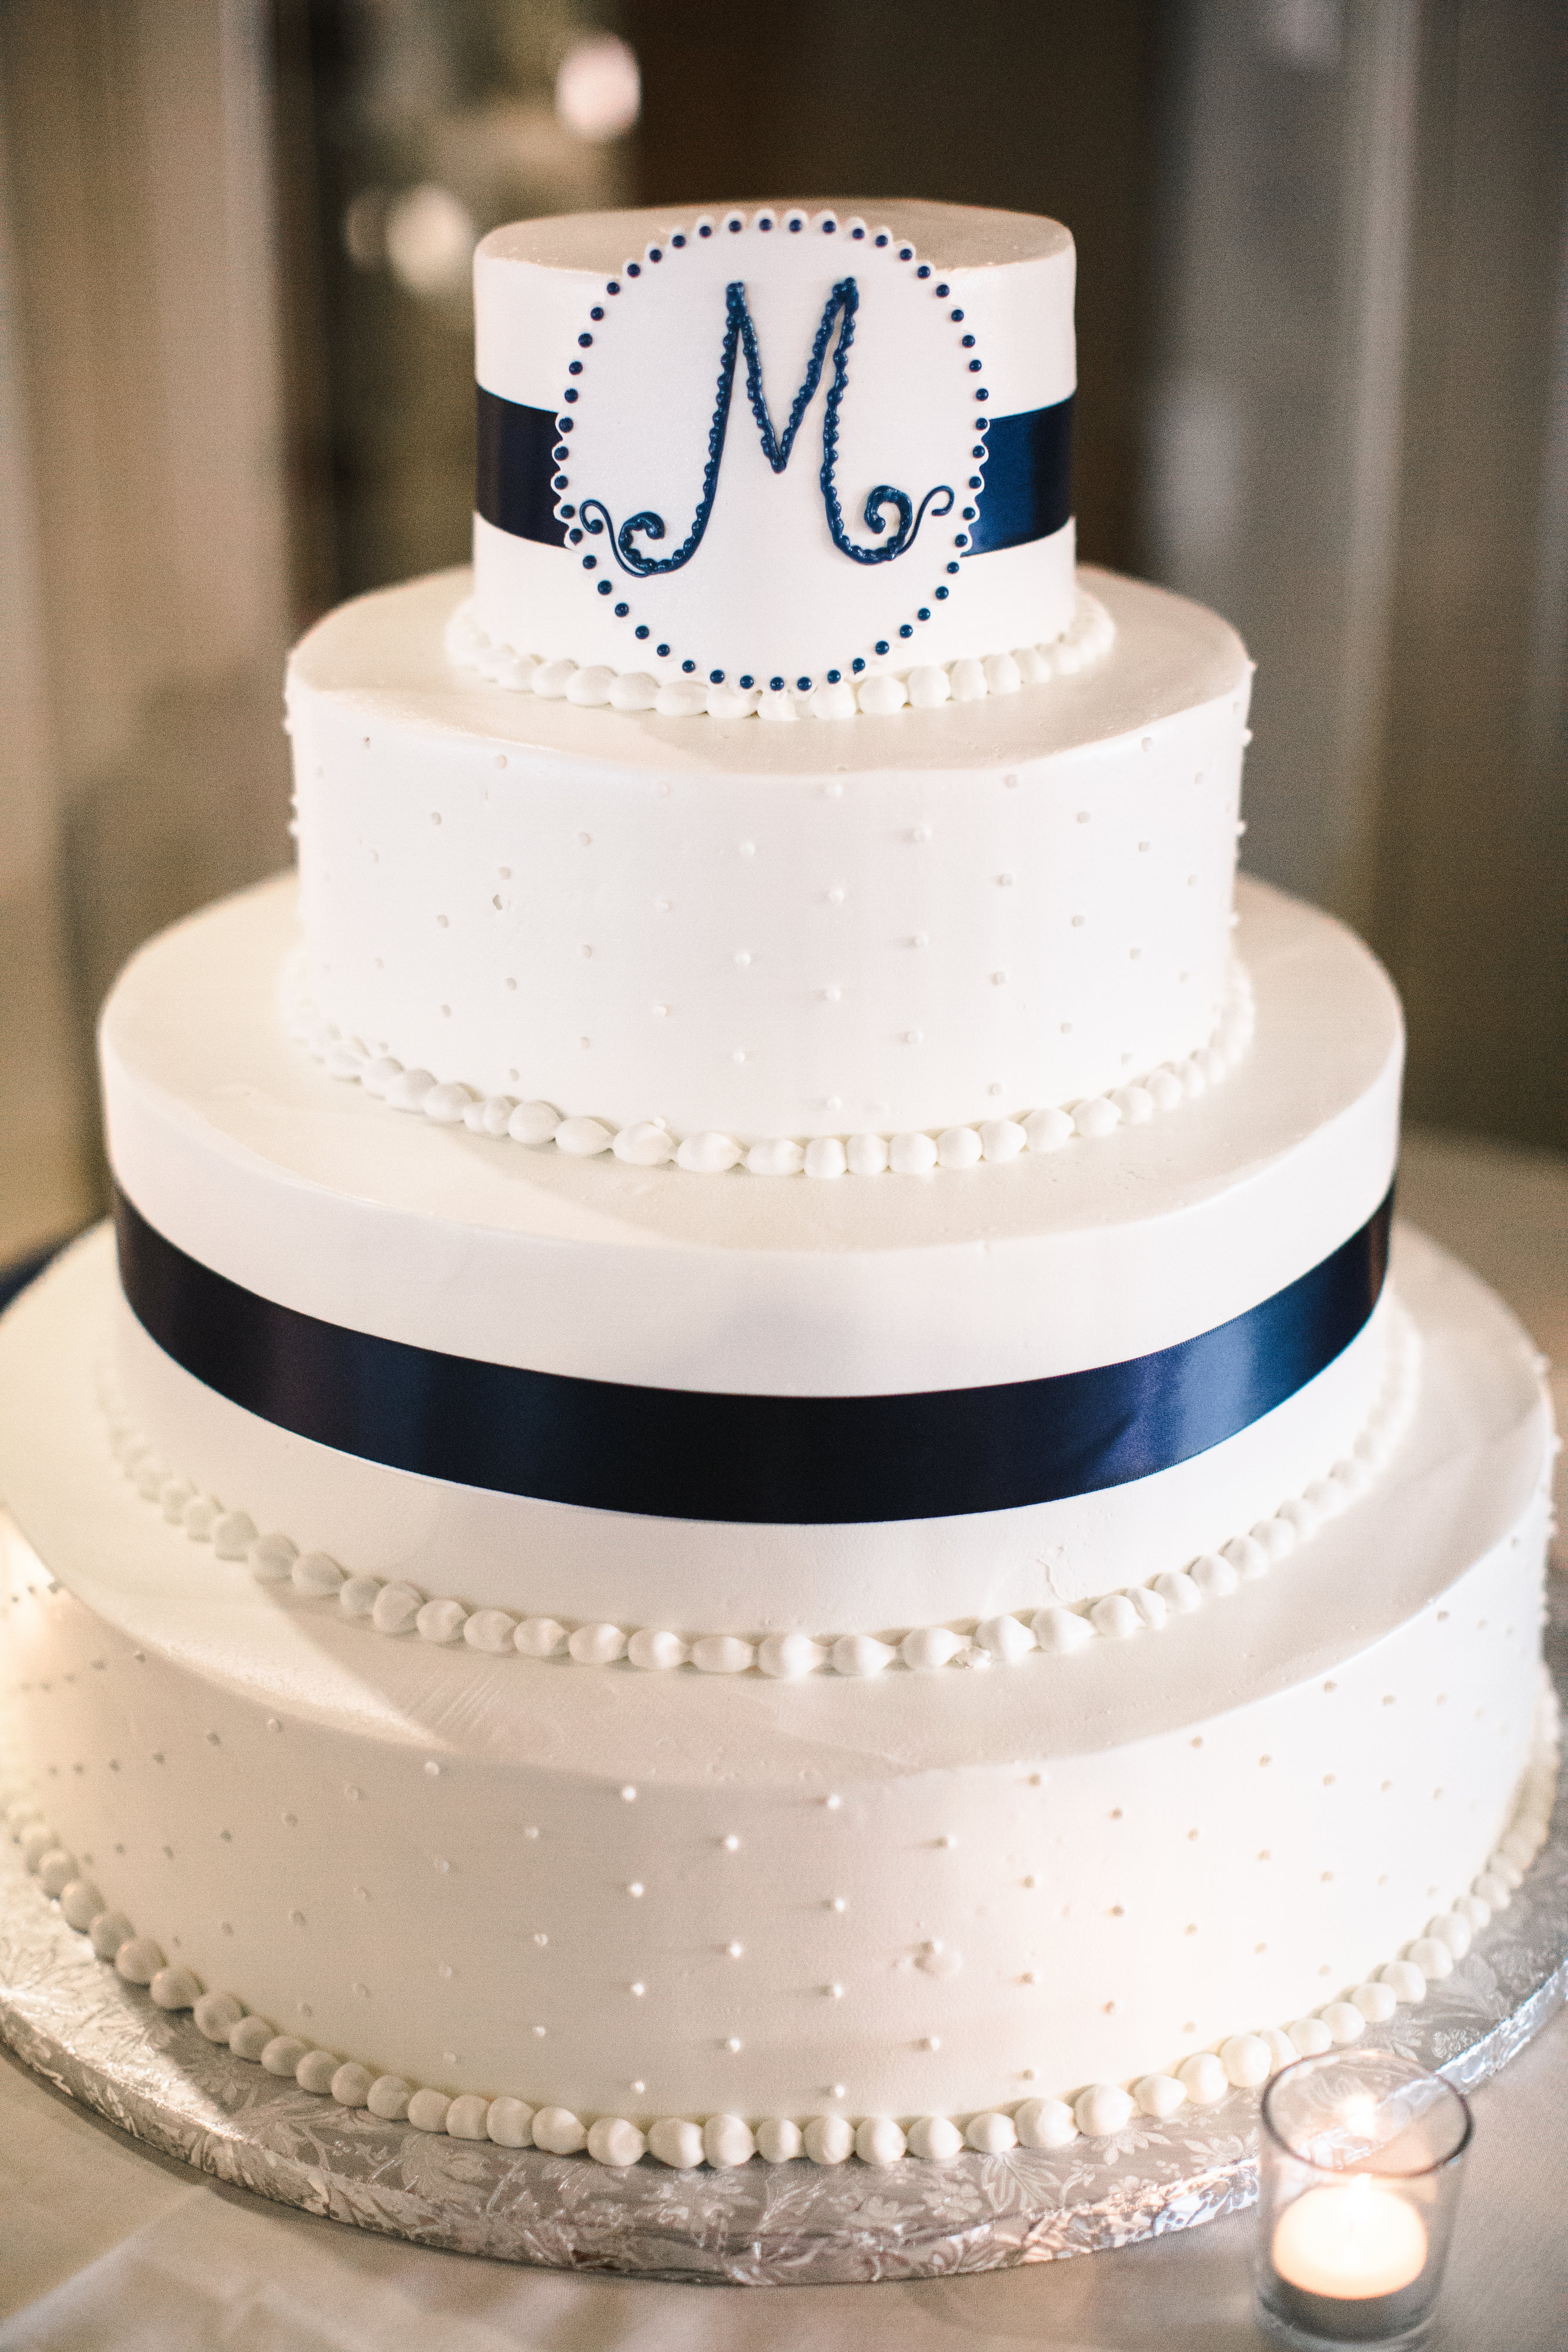 A white fourtier wedding cake decorated with polka dot